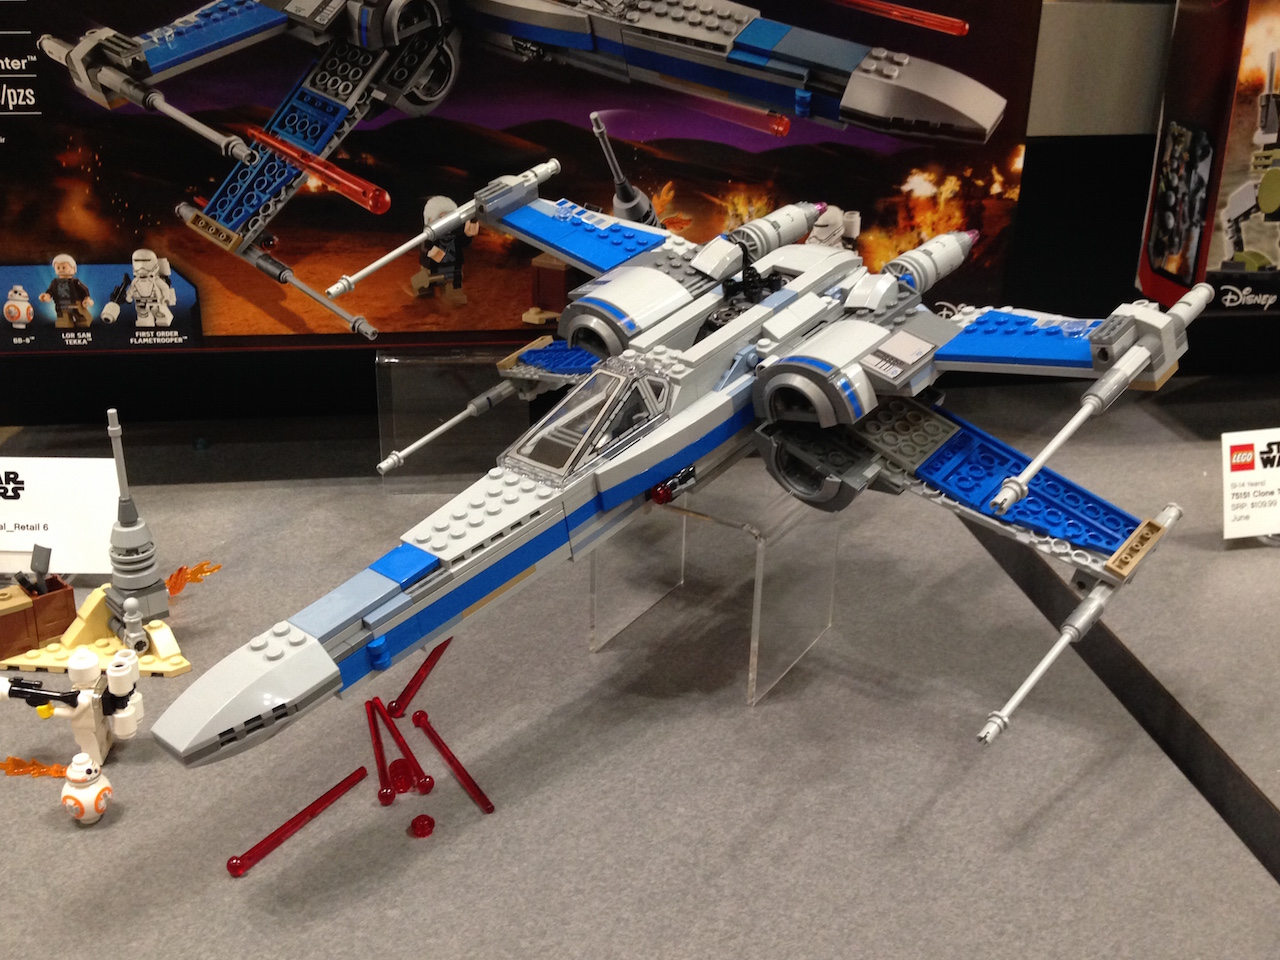 The Resistance X-Wing Fighter